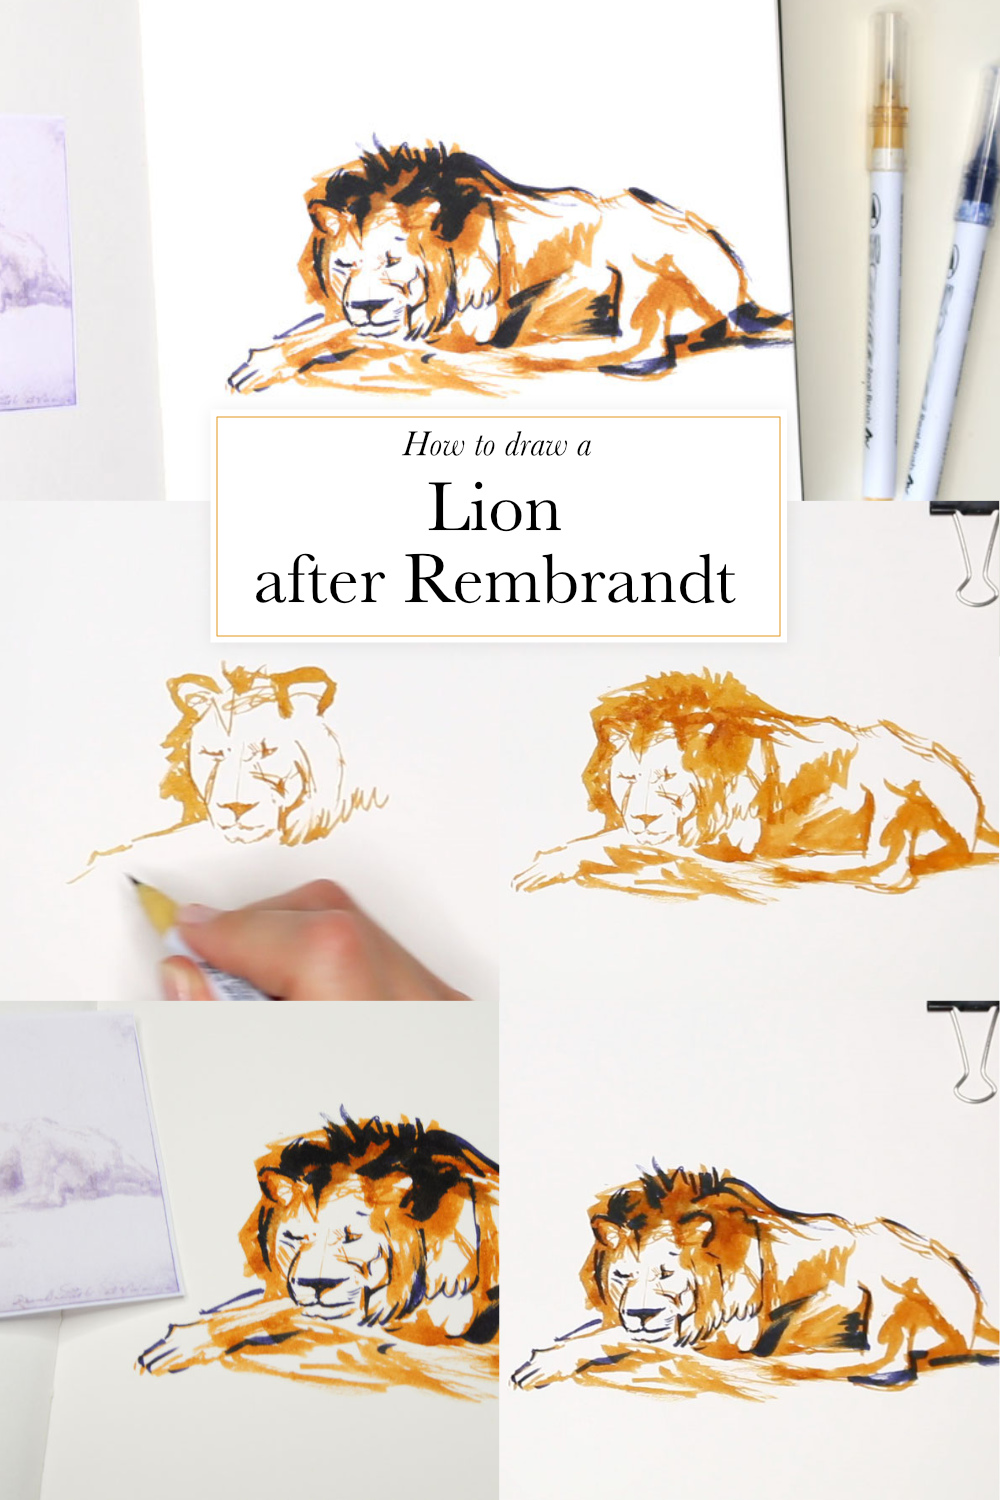 How to draw a lion quickly  | by The Daily Atelier